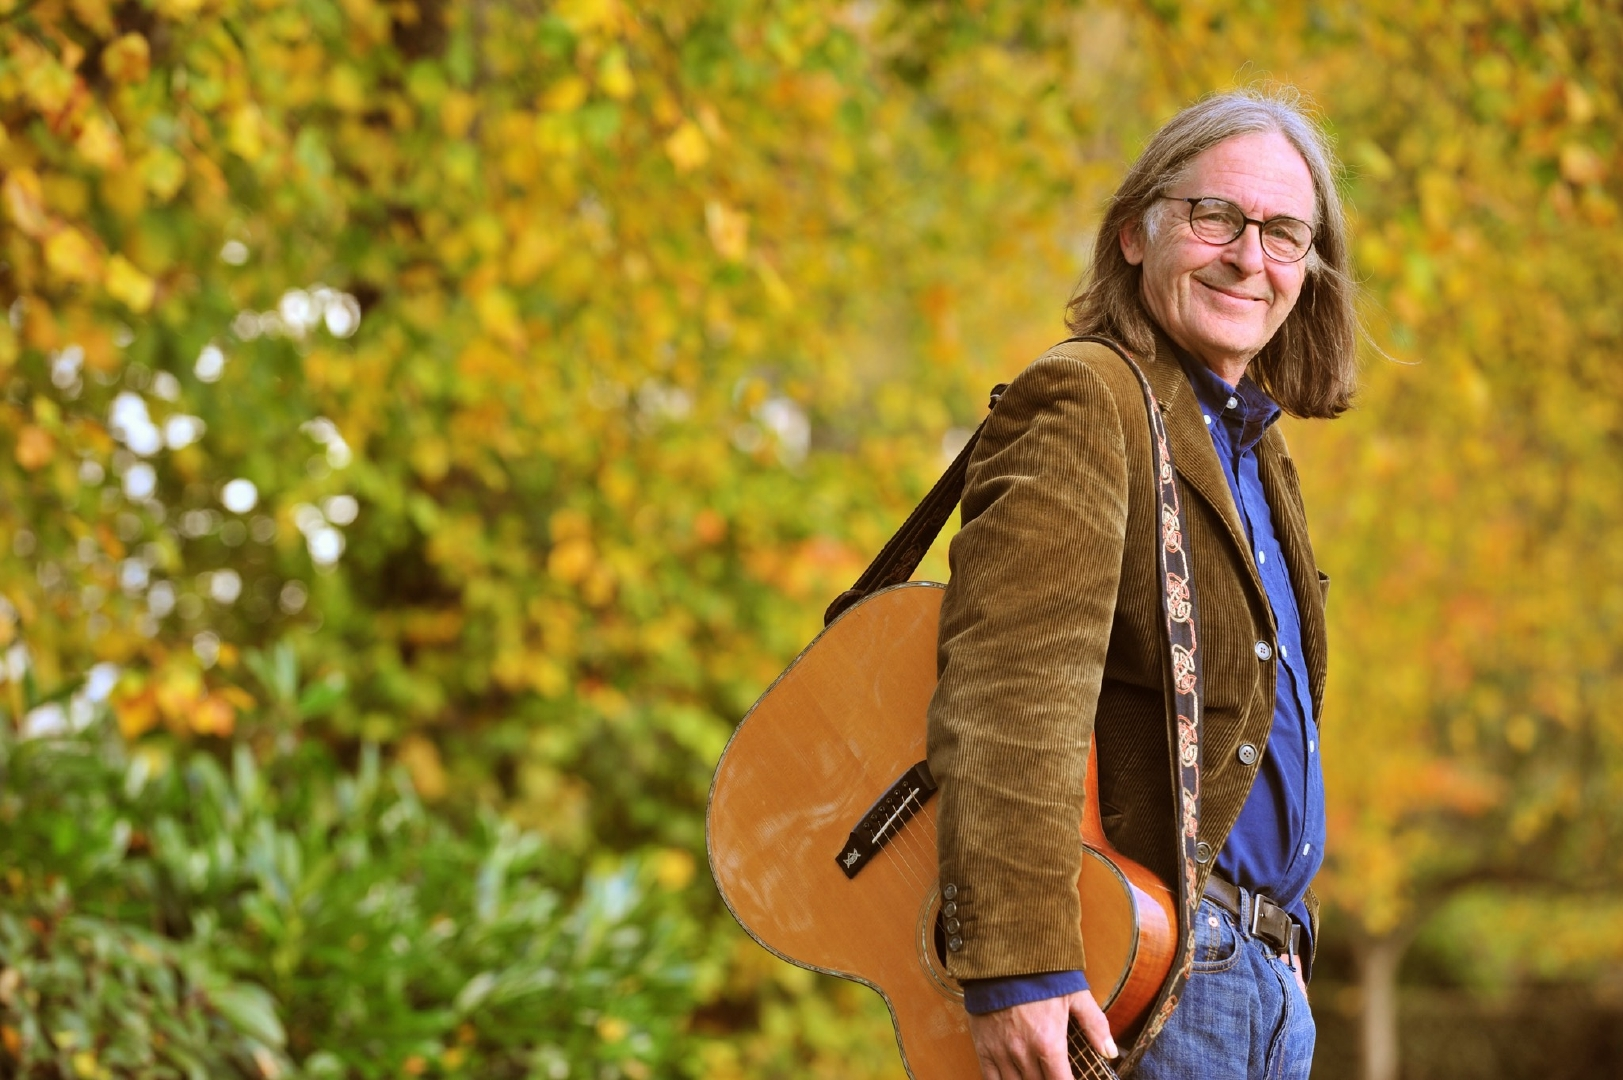 Perthshire Amber, run by Dougie MacLean and family, is on this weekend.